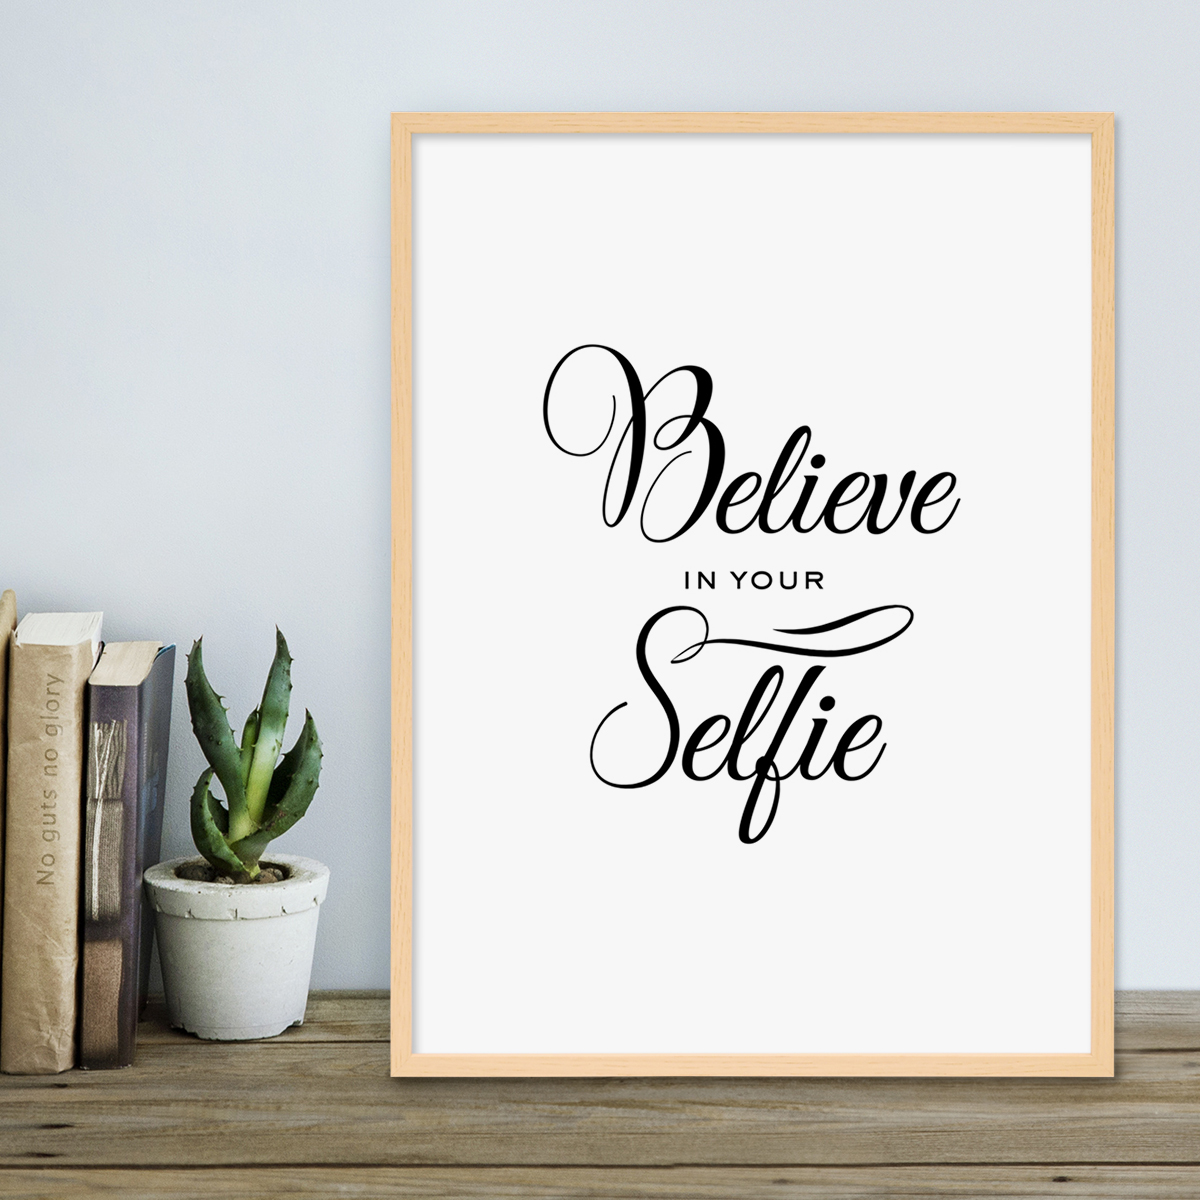 poster mit bilderrahmen natur 39 selfie 39 30x40 cm schwarz weiss motiv fun spruch typographie. Black Bedroom Furniture Sets. Home Design Ideas